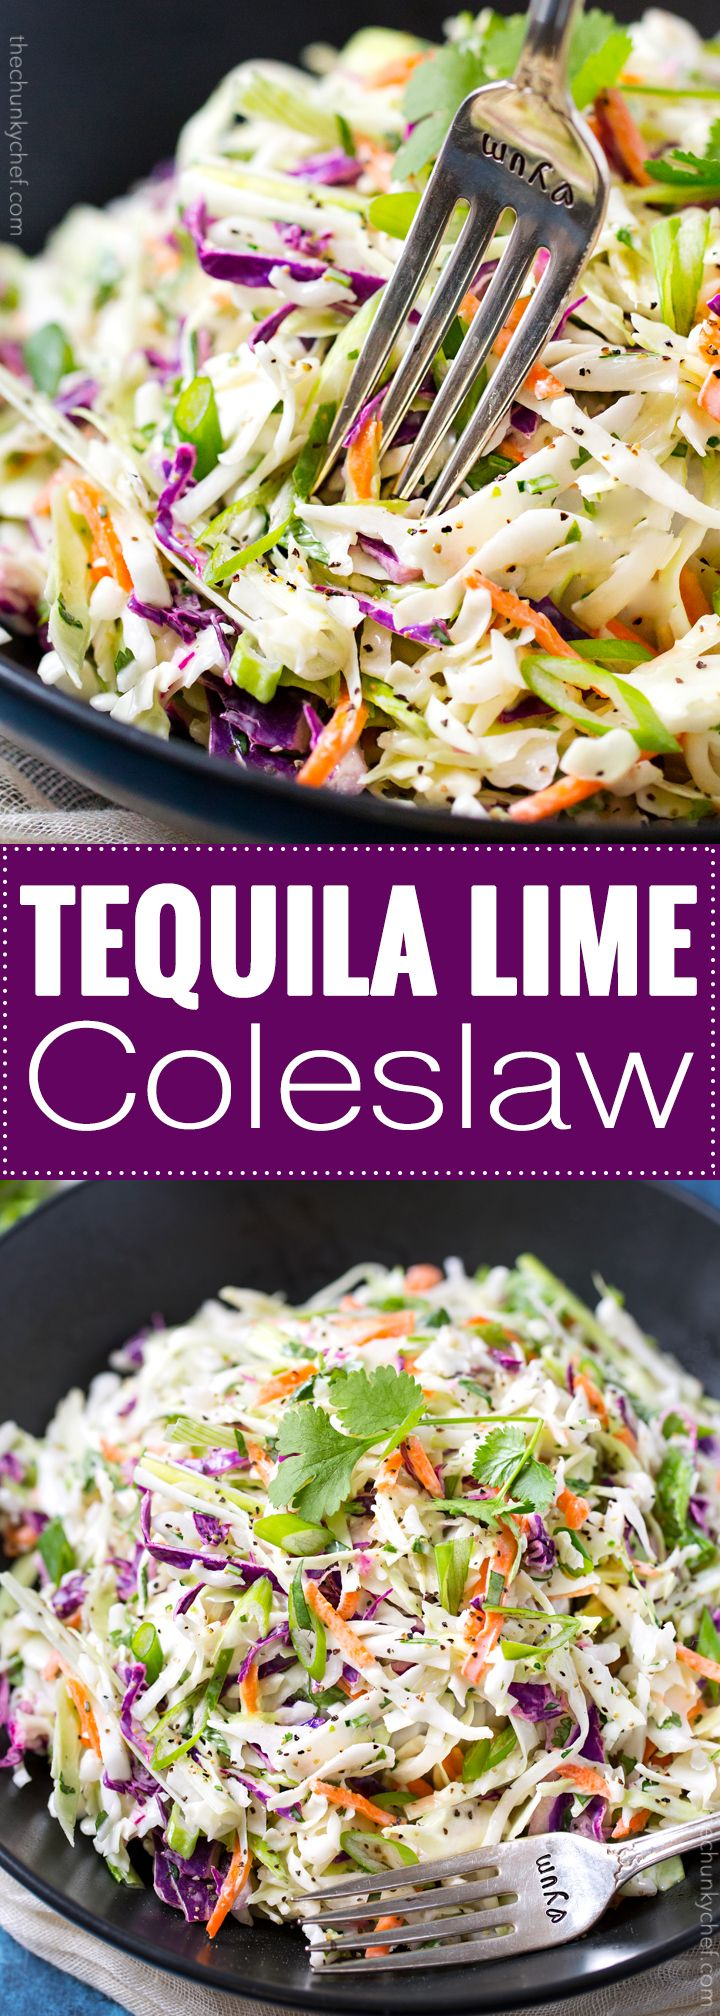 Tequila Lime Coleslaw with Cilantro | This unique coleslaw recipe combines great Mexican flavors like tequila, lime and cilantro, for a truly crowd-pleasing side dish! | http://thechunkychef.com